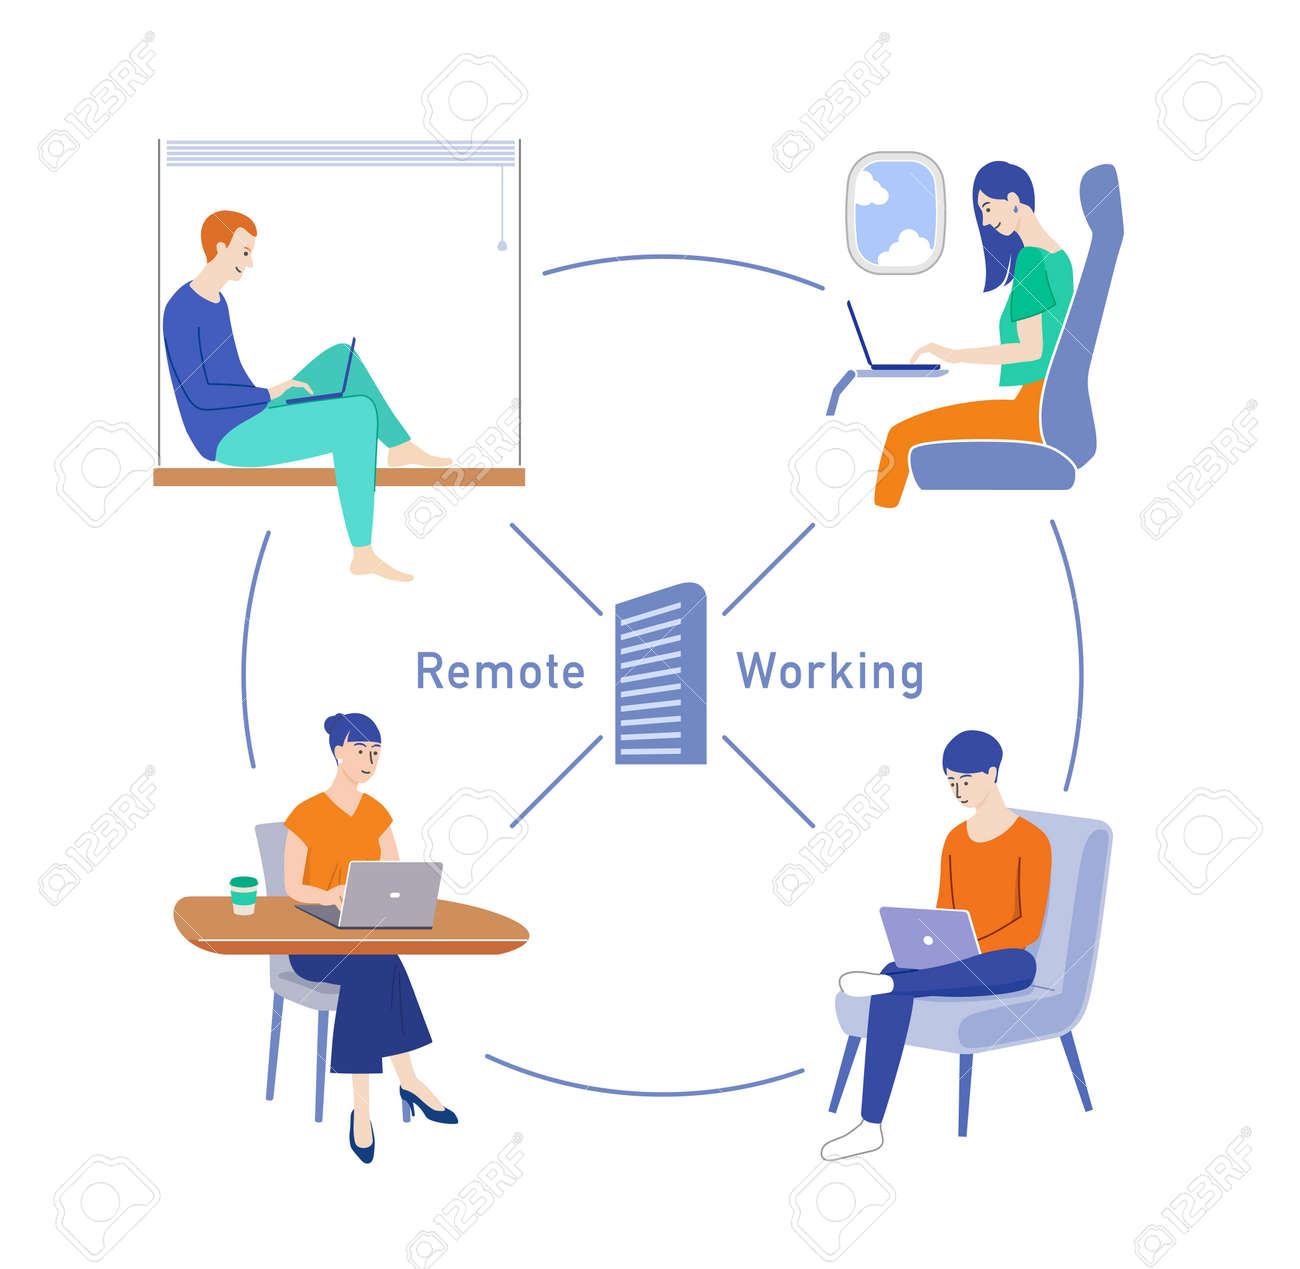 People doing remote work and telework - 169140554